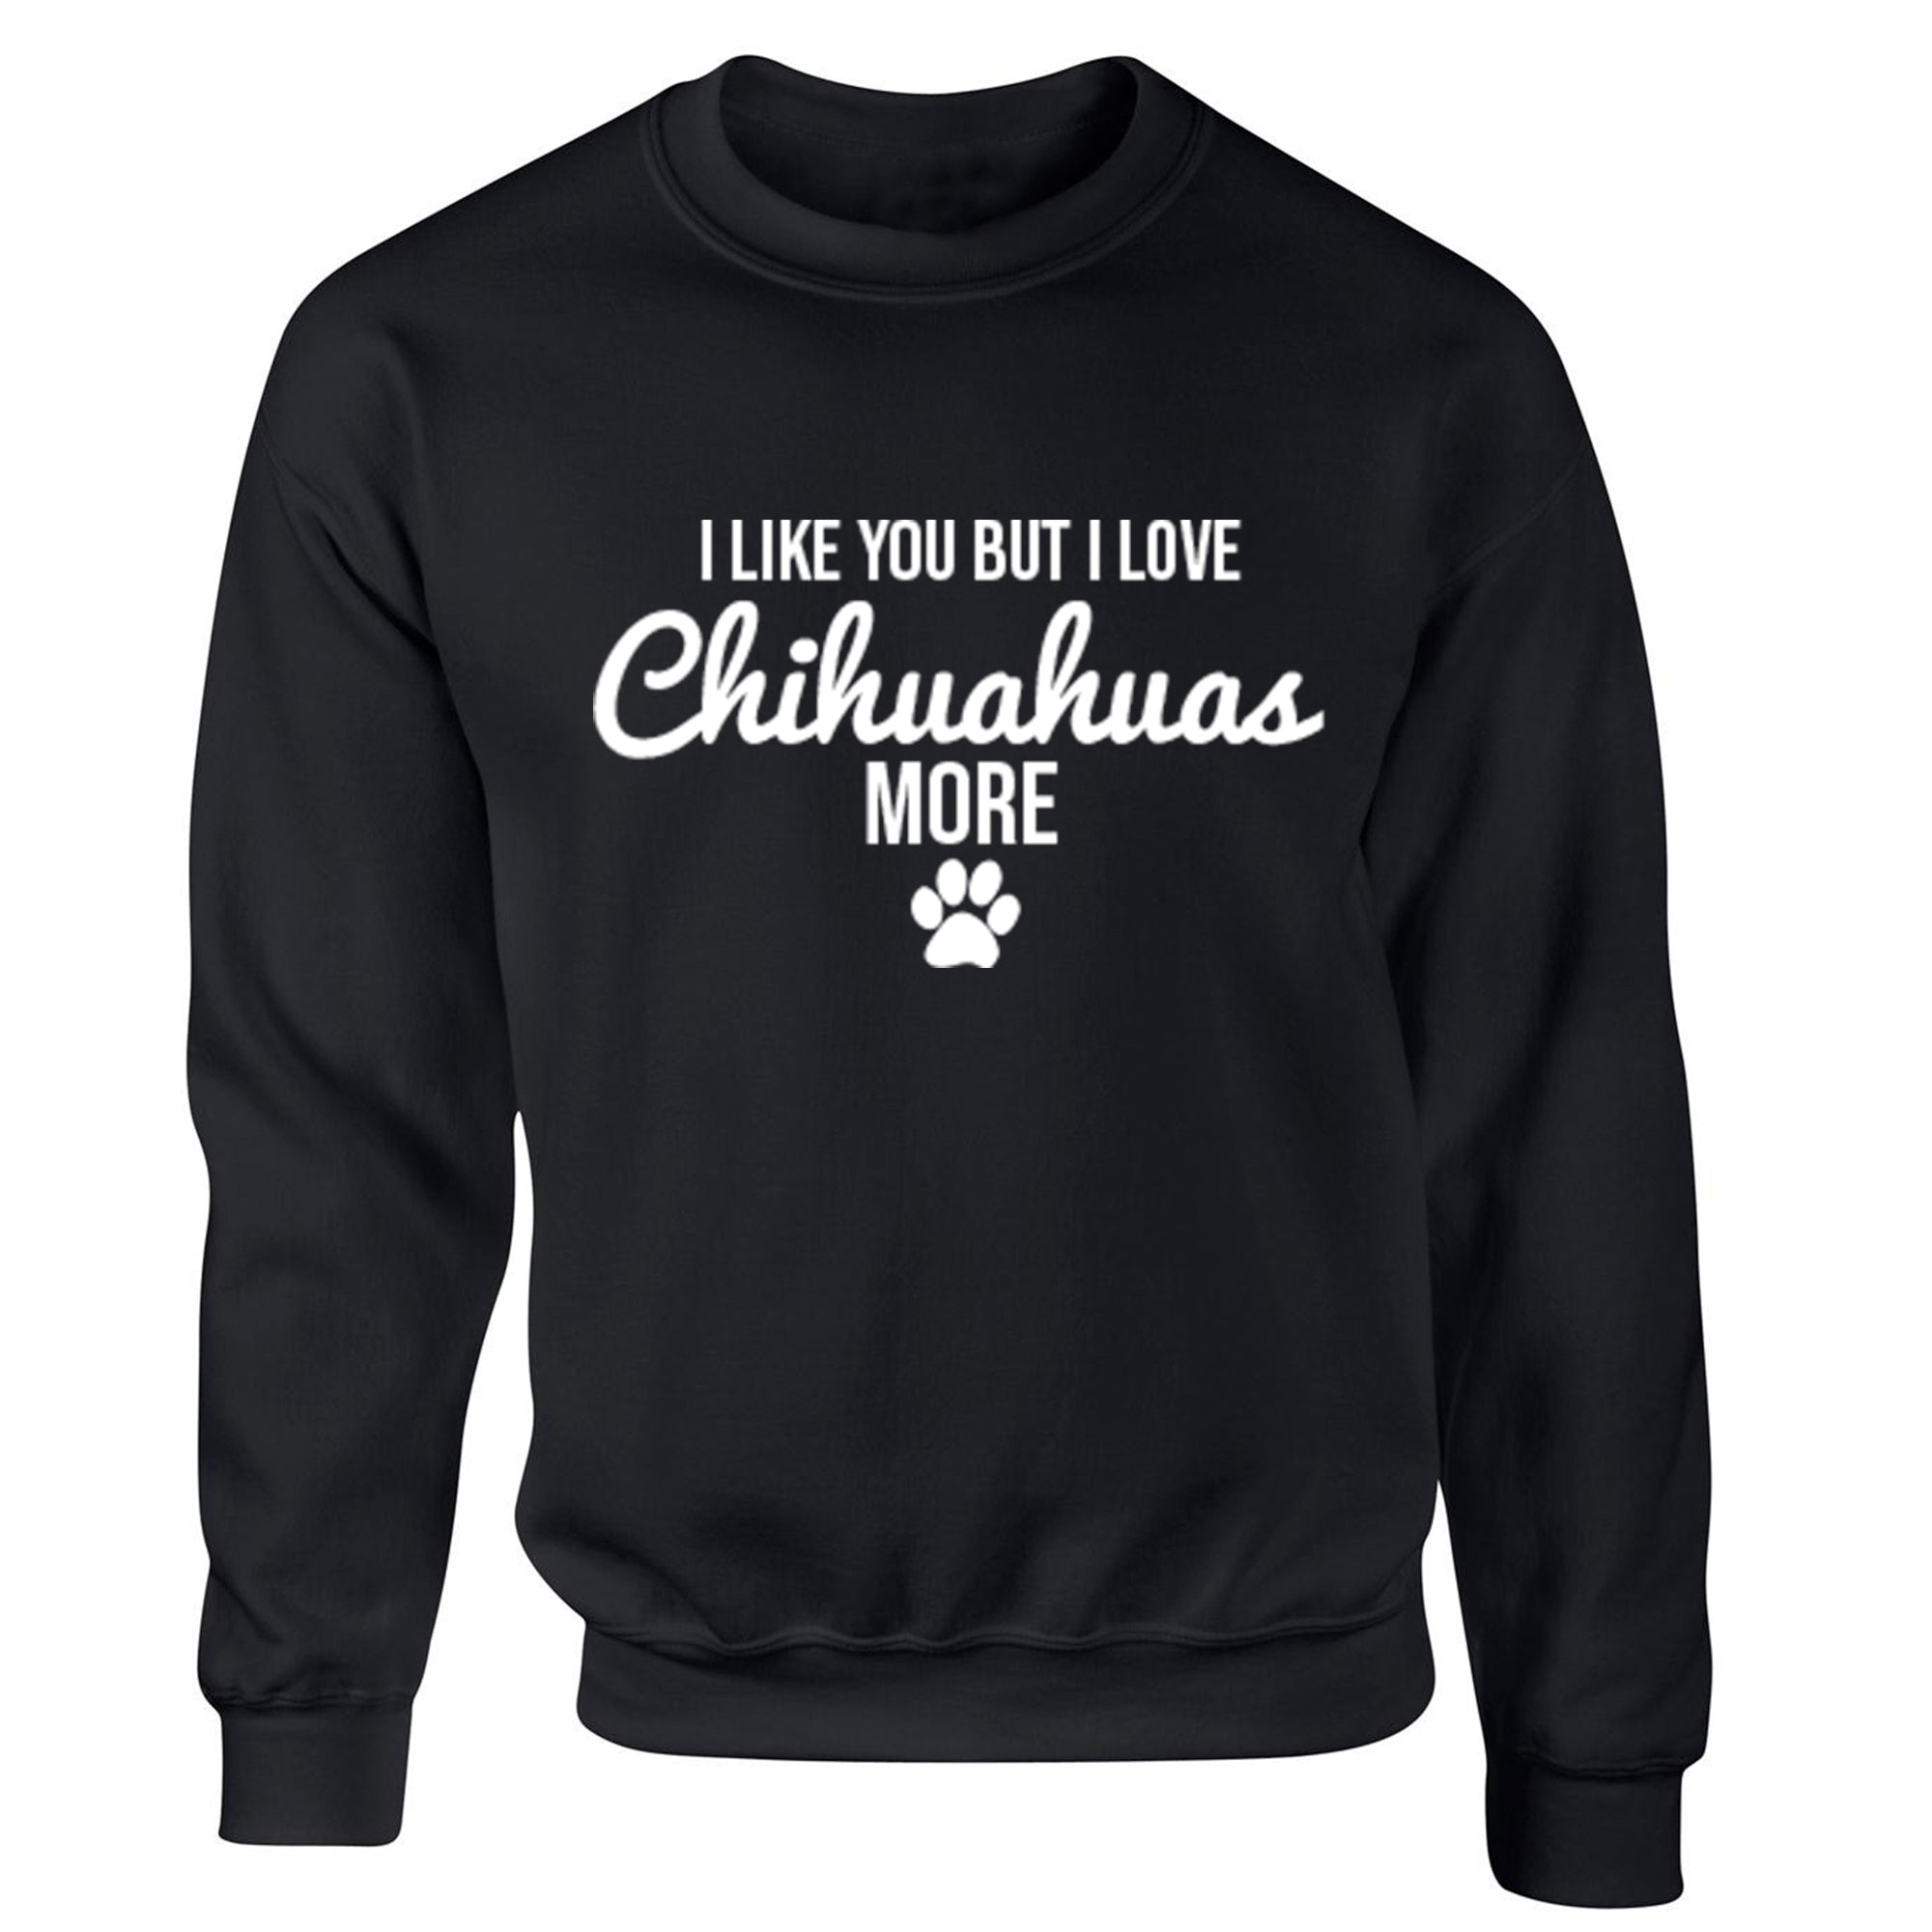 I Like You But I Love Chihuahuas More Unisex Jumper S0088 - Illustrated Identity Ltd.